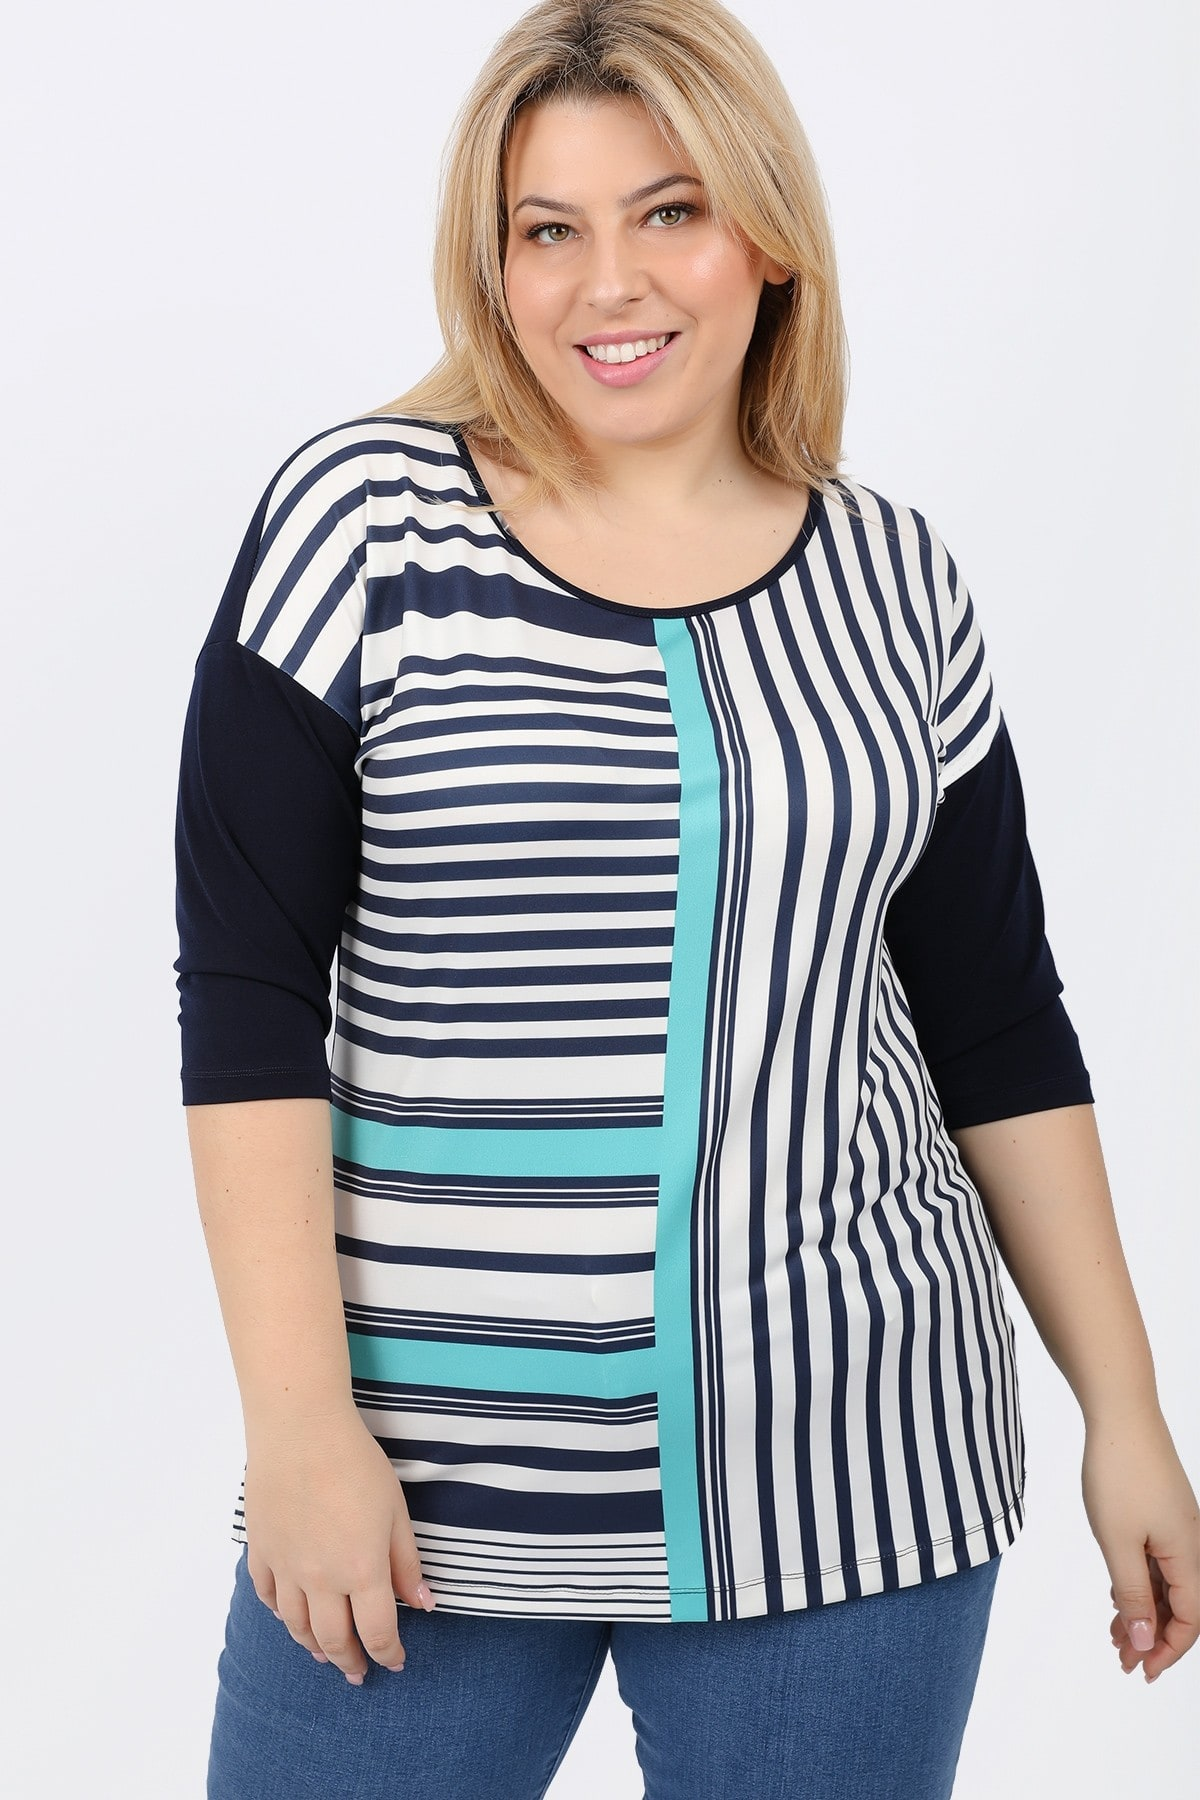 Blouse in print with stripes